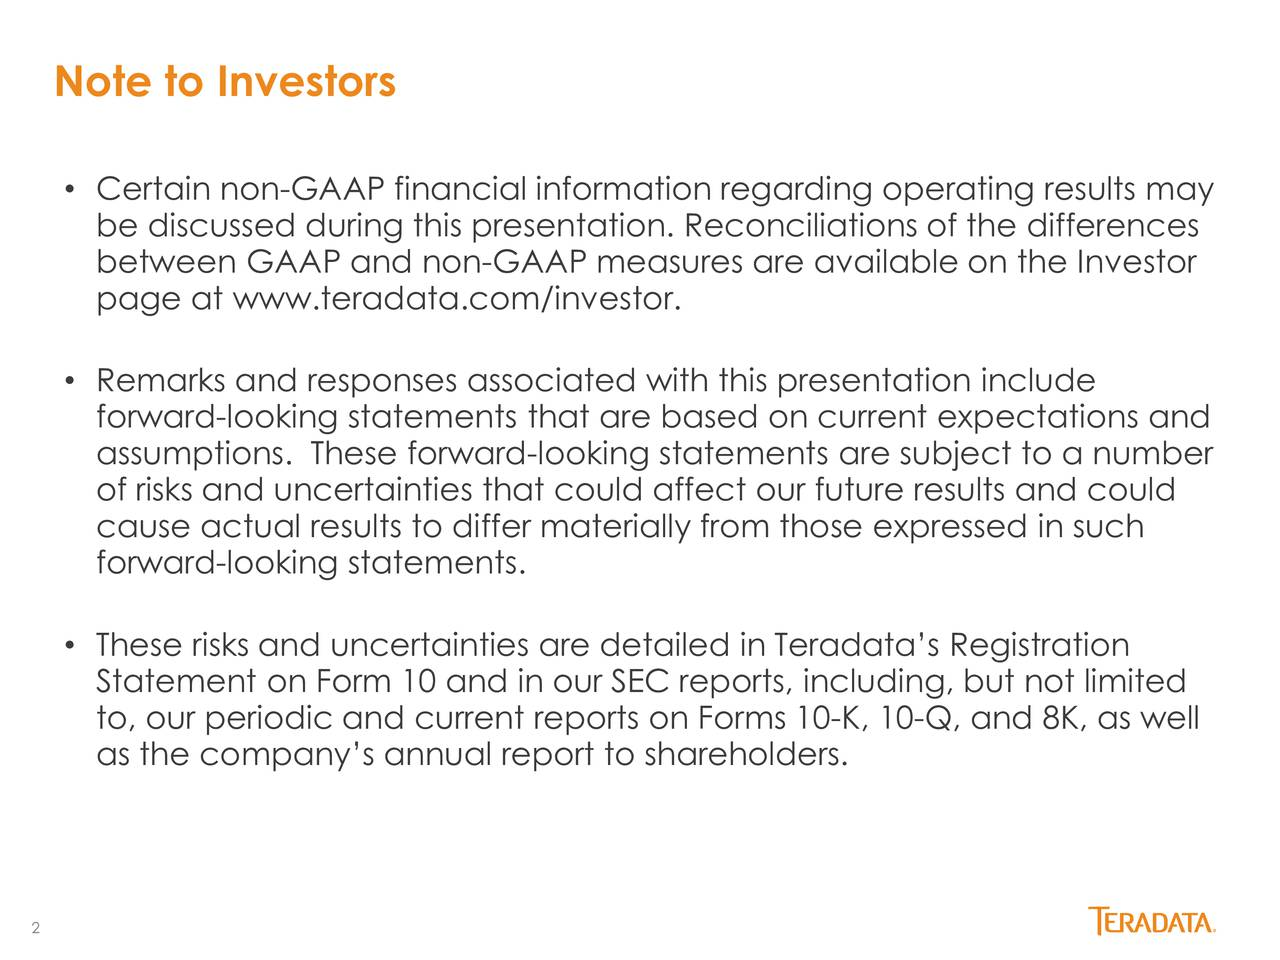 Certain non-GAAP financial information regarding operating results may be discussed during this presentation. Reconciliations of the differences between GAAP and non-GAAP measures are available on the Investor page at www.teradata.com/investor. Remarks and responses associated with this presentation include forward-looking statements that are based on current expectations and assumptions. These forward-looking statements are subject to a number of risks and uncertainties that could affect our future results and could cause actual results to differ materially from those expressed in such forward-looking statements. These risks and uncertainties are detailed in Teradatas Registration Statement on Form 10 and in our SEC reports, including, but not limited to, our periodic and current reports on Forms 10-K, 10-Q, and 8K, as well as the companys annual report to shareholders. 2